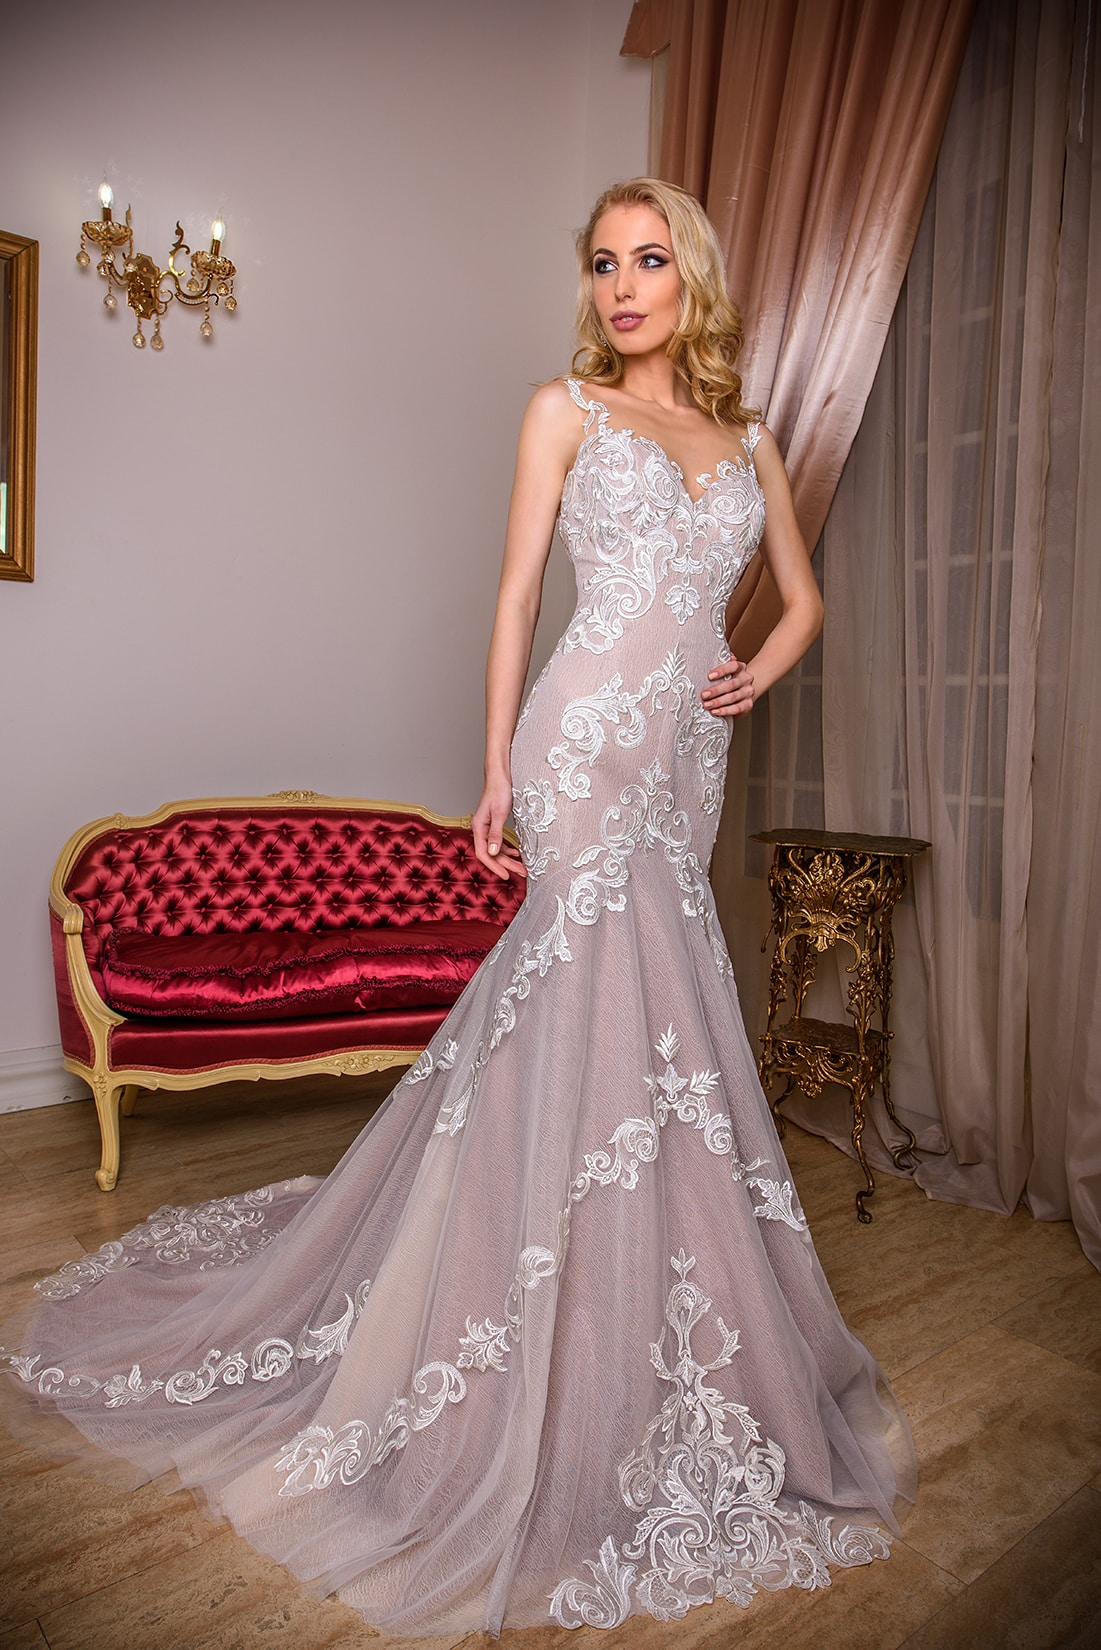 Nancy Model - Colectia Baroque - Adora Sposa